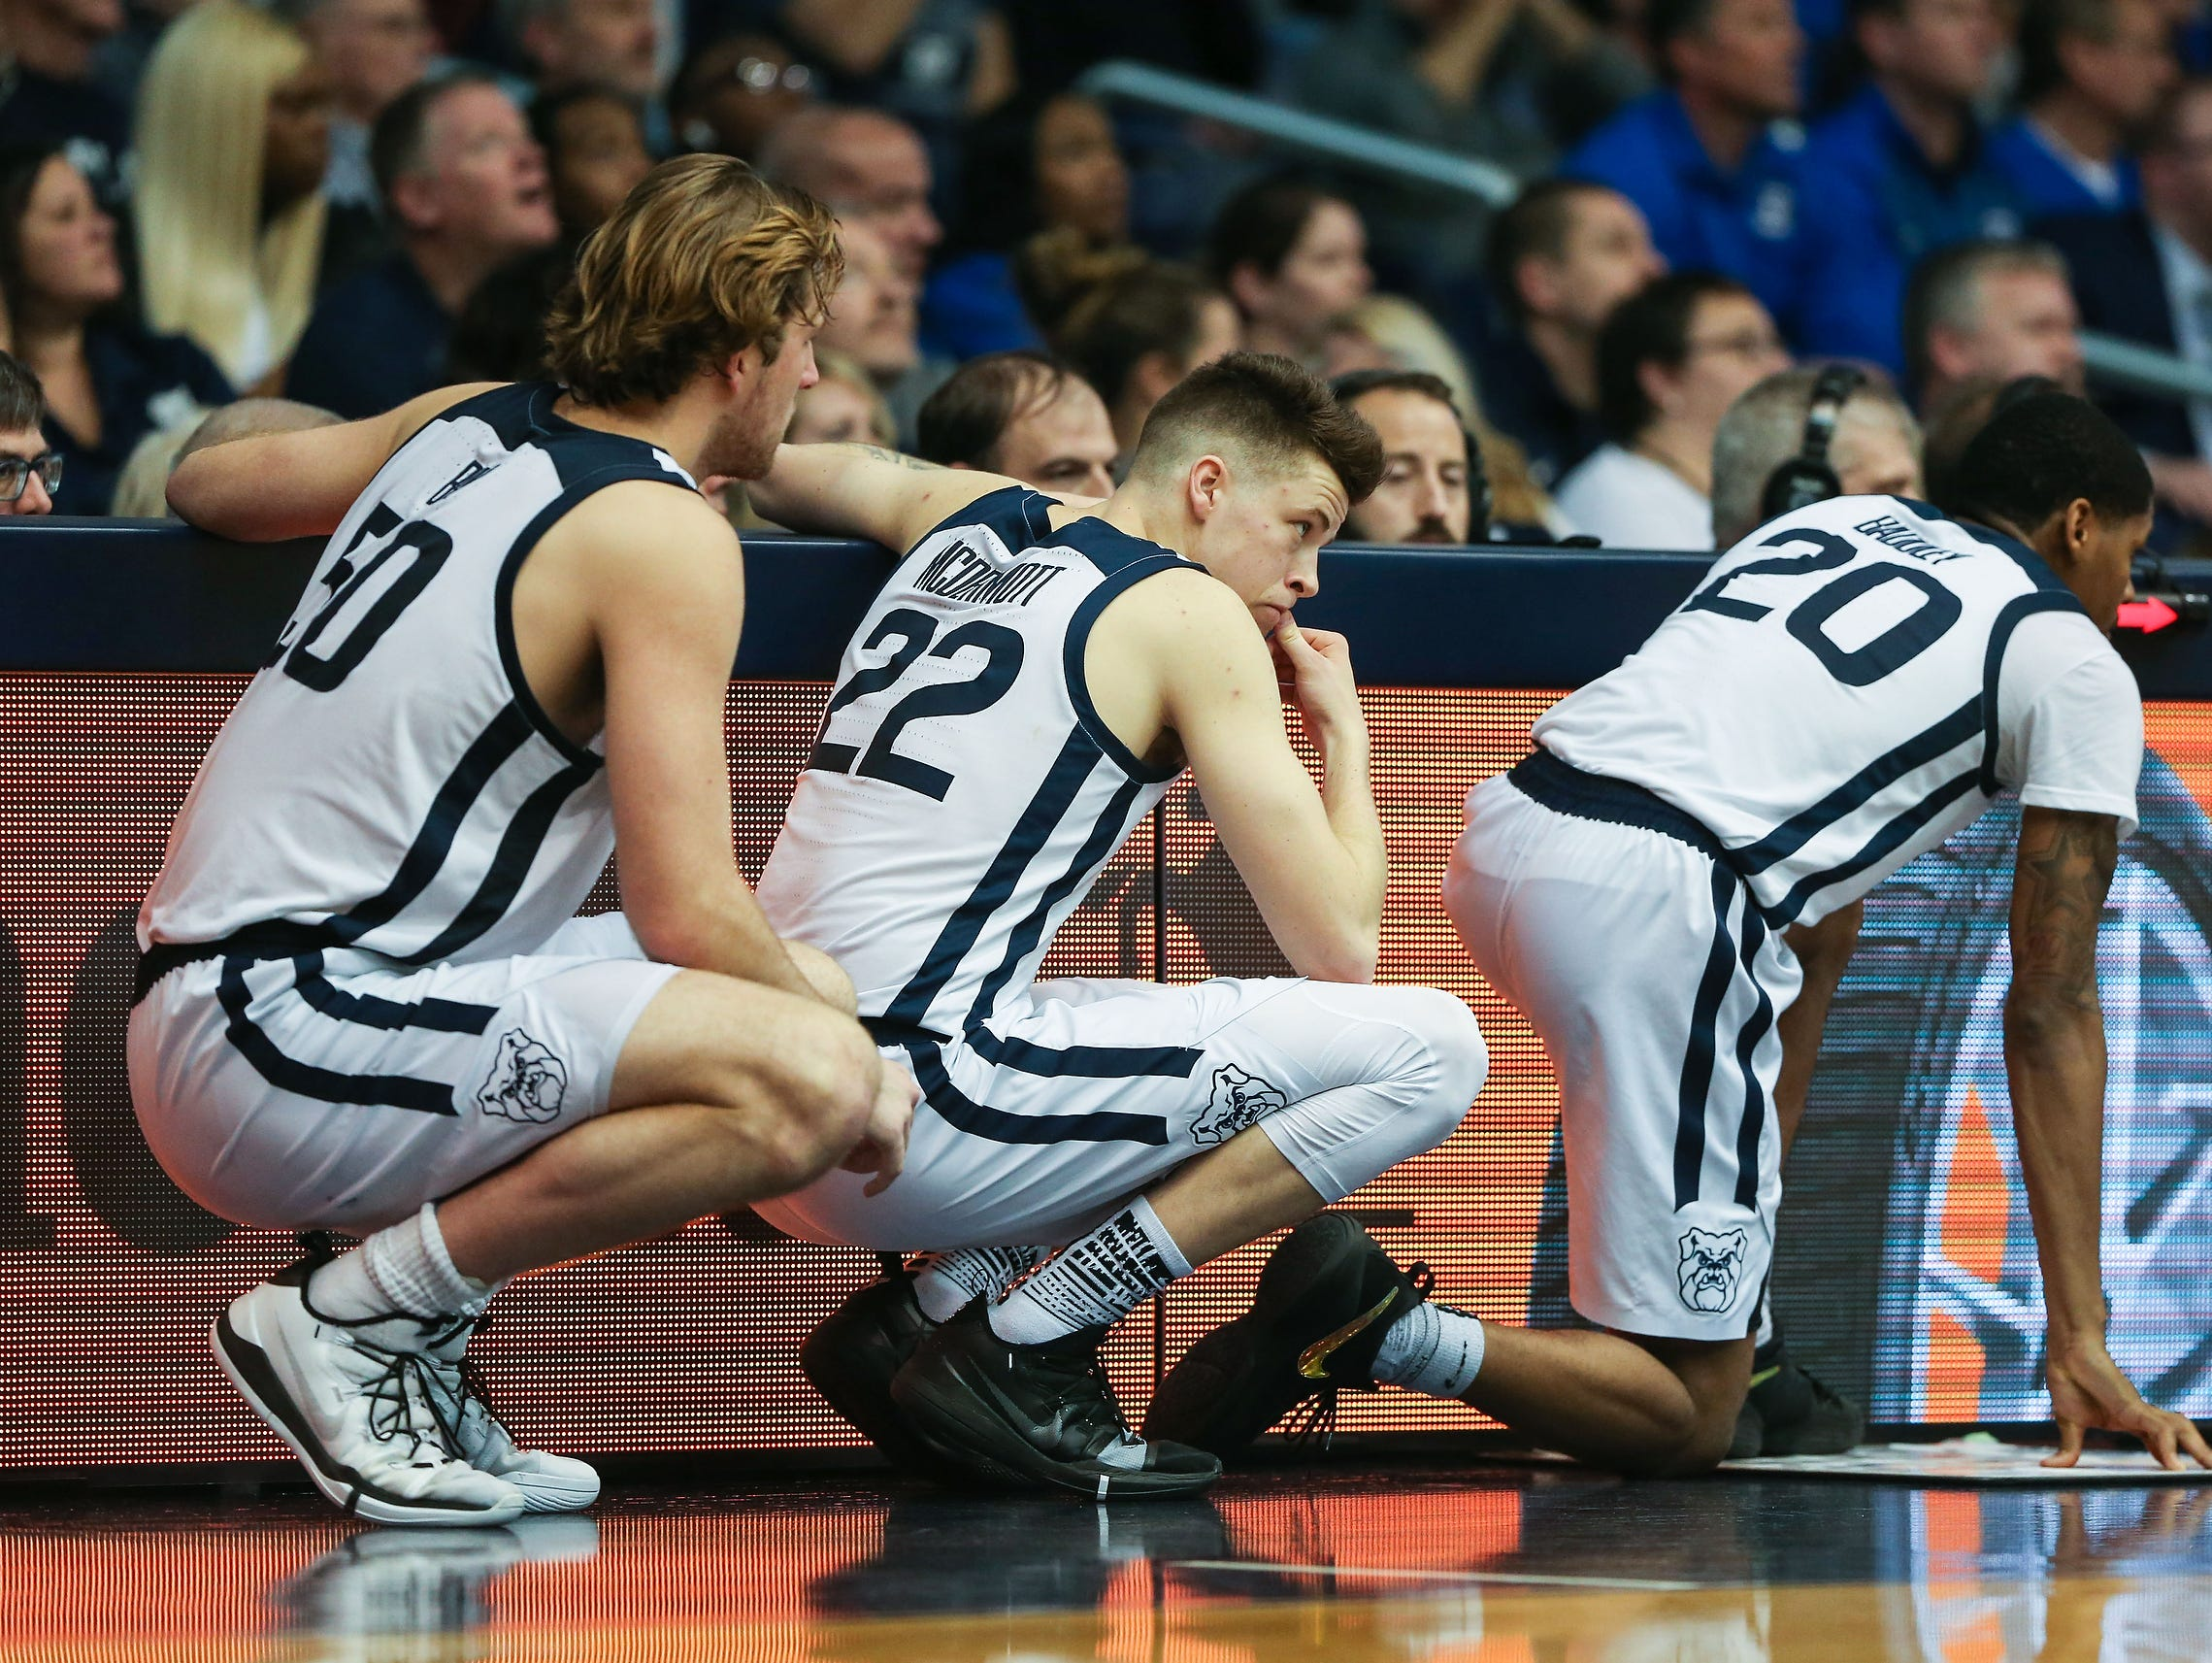 Butler Bulldogs forward Joey Brunk (50)forward Sean McDermott (22) and forward Henry Baddley (20) wait to check in during the second half of game action between Butler University and Creighton University, at Hinkle Fieldhouse in Indianapolis, Indiana on Saturday, Jan. 5, 2019. The Butler Bulldogs defeated the Creighton Bluejays 84-69.